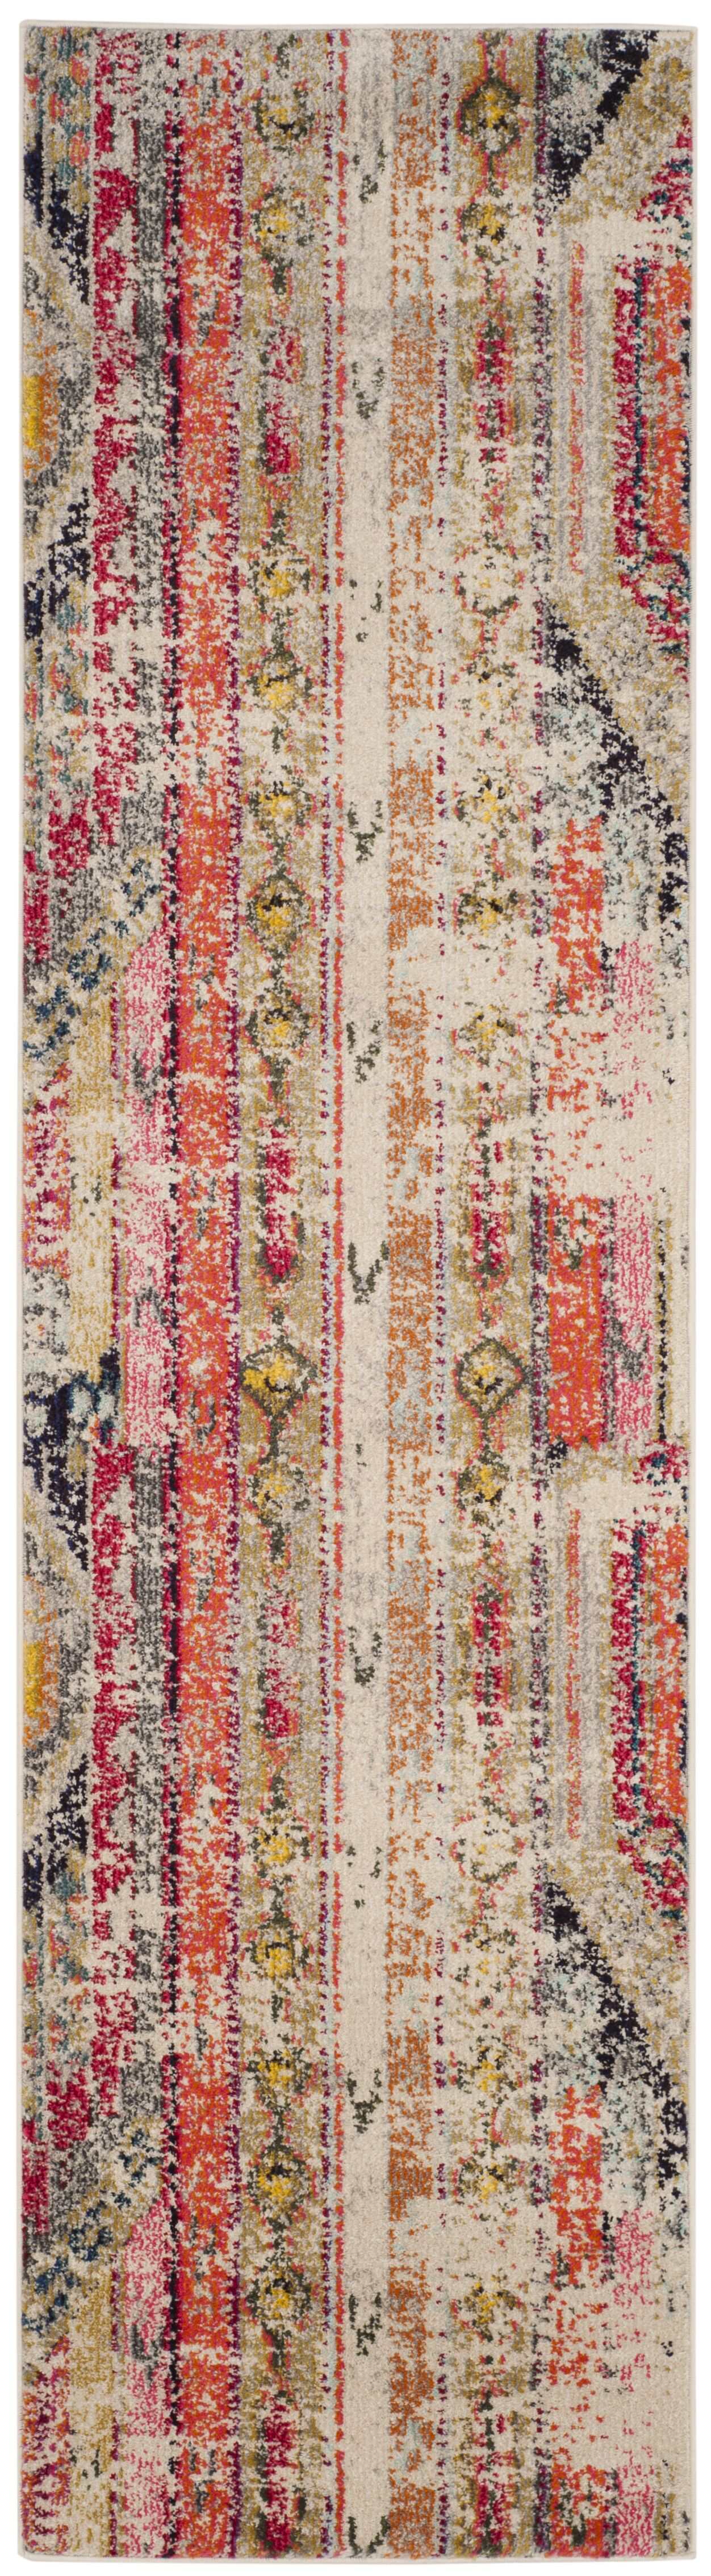 Alfred Abstract Grey/Orange/Pink Area Rug Rug Size: Runner 2'2